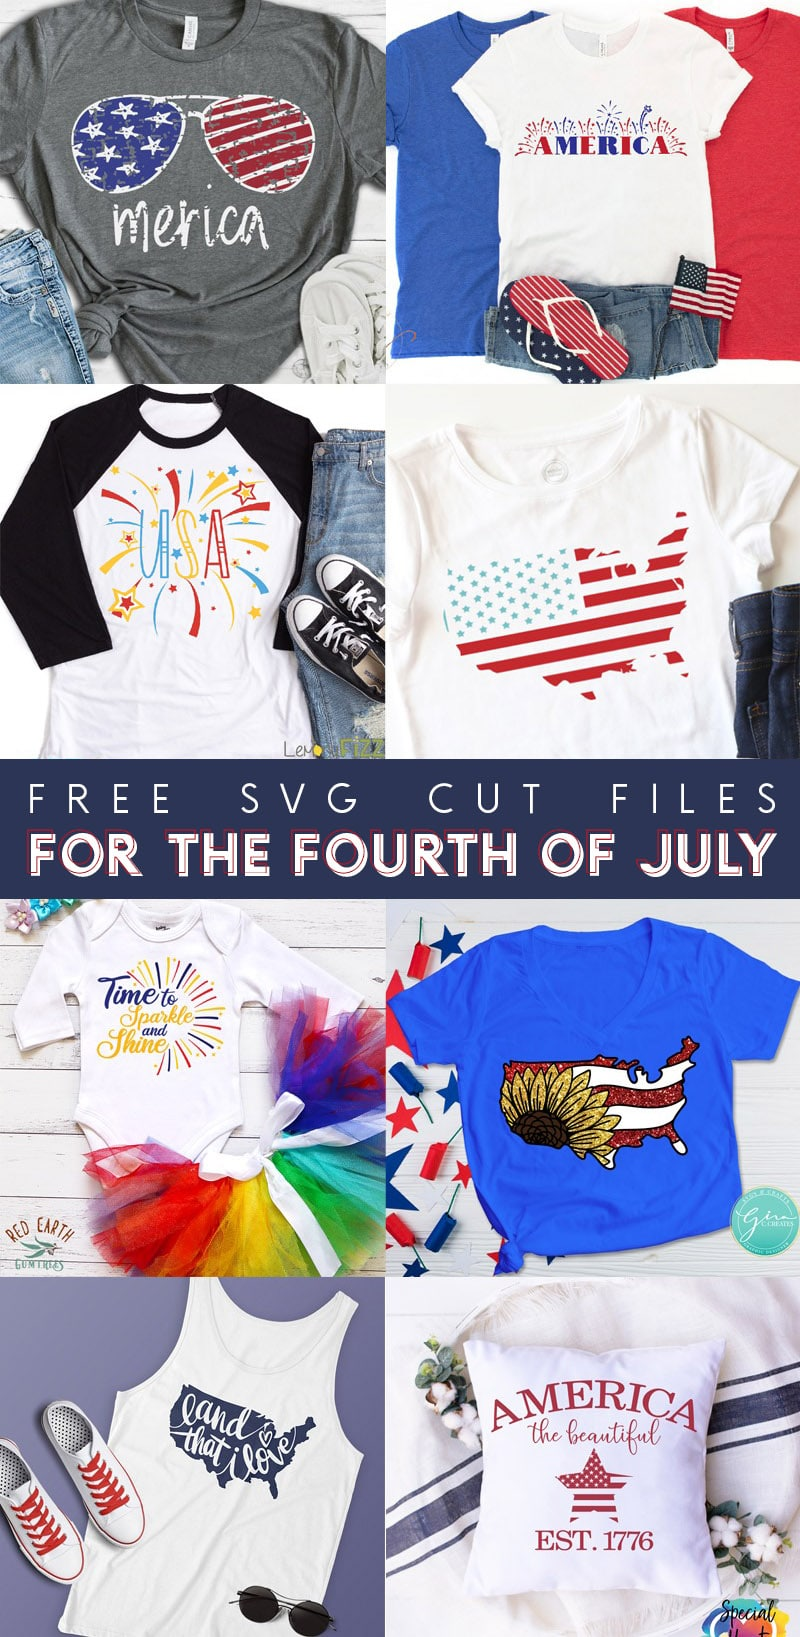 8 free svg cut files for the fourth of july collage